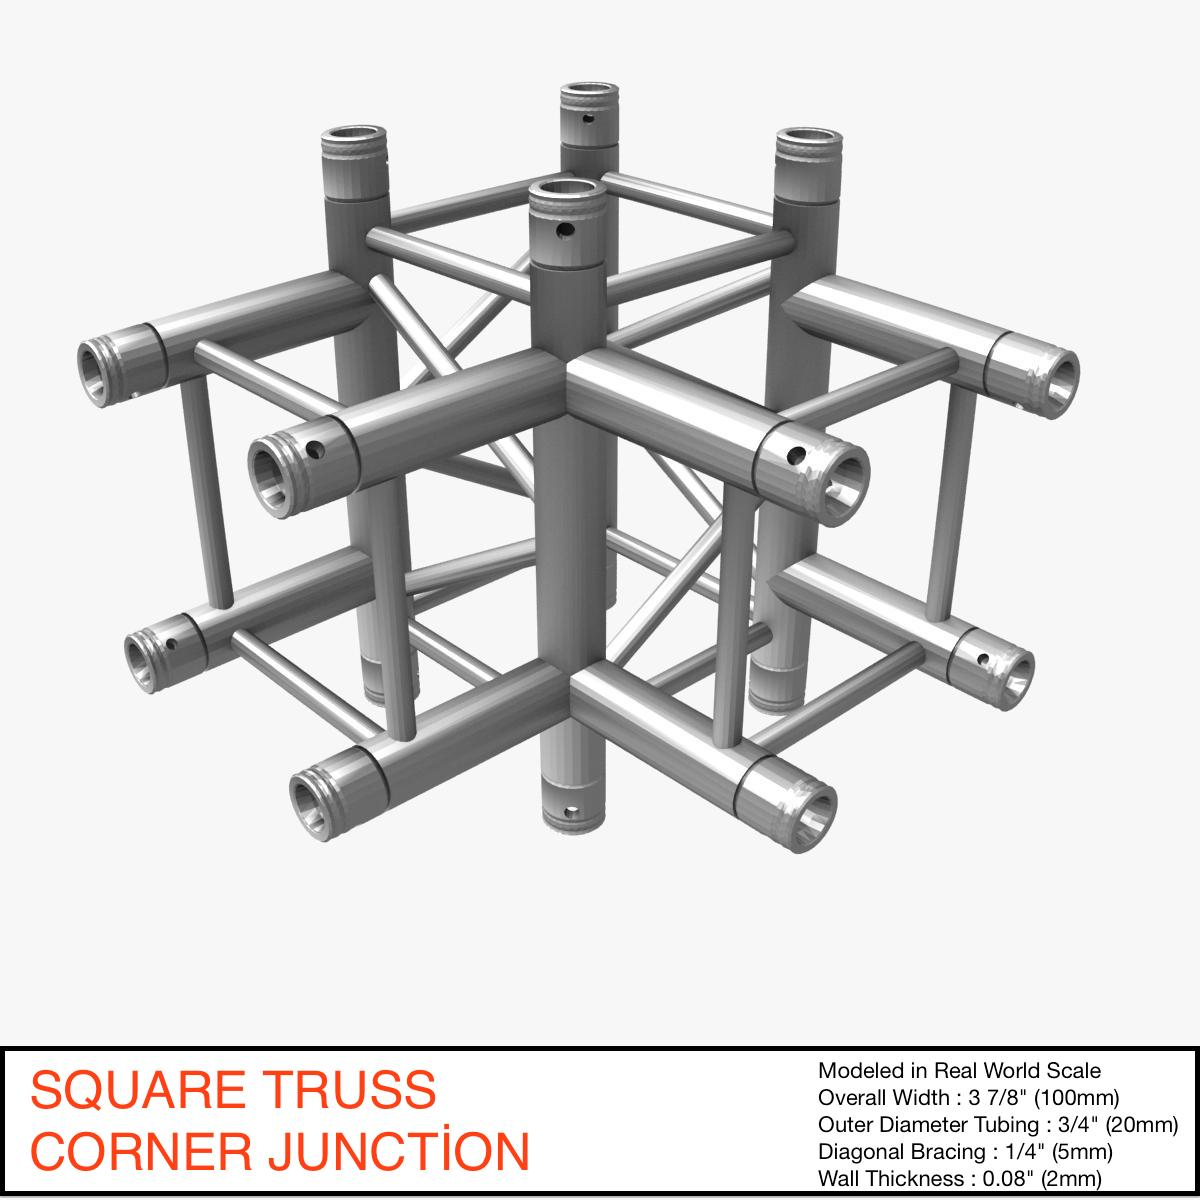 square truss corner junction 44 3d model 3ds max dxf fbx b3d c4d other  obj 268893